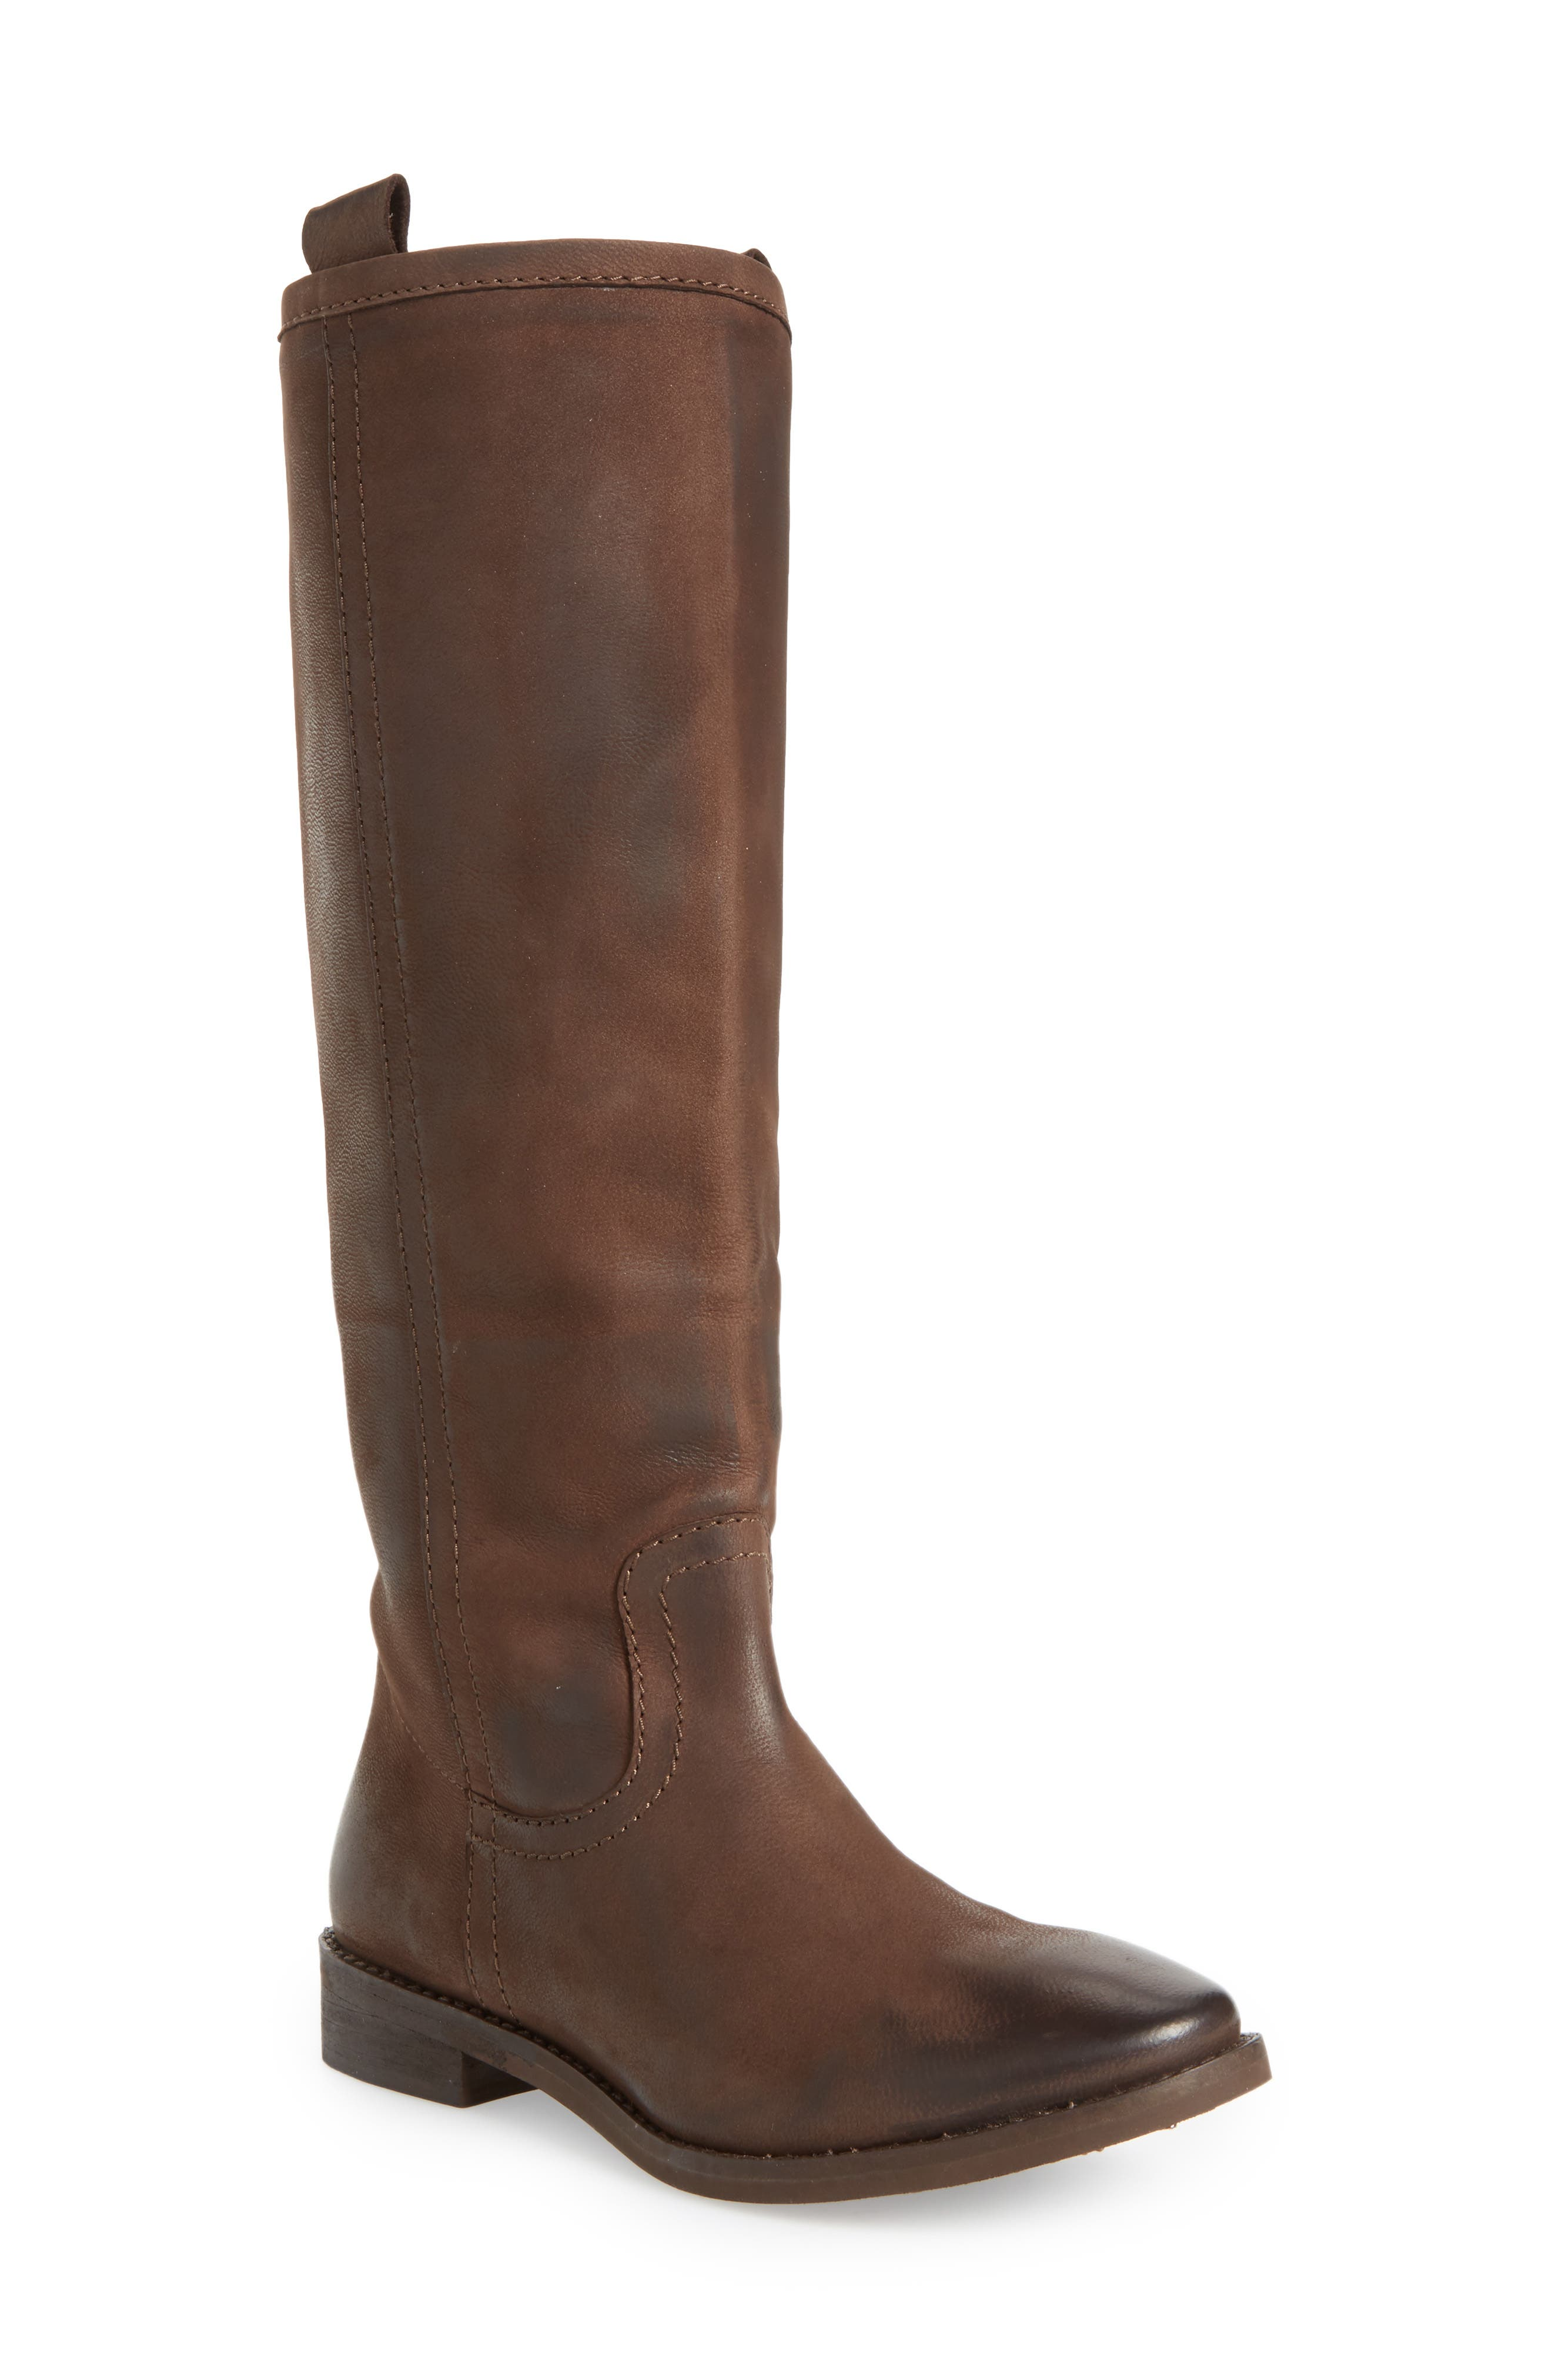 Main Image - Seychelles Drama Riding Boot (Women)